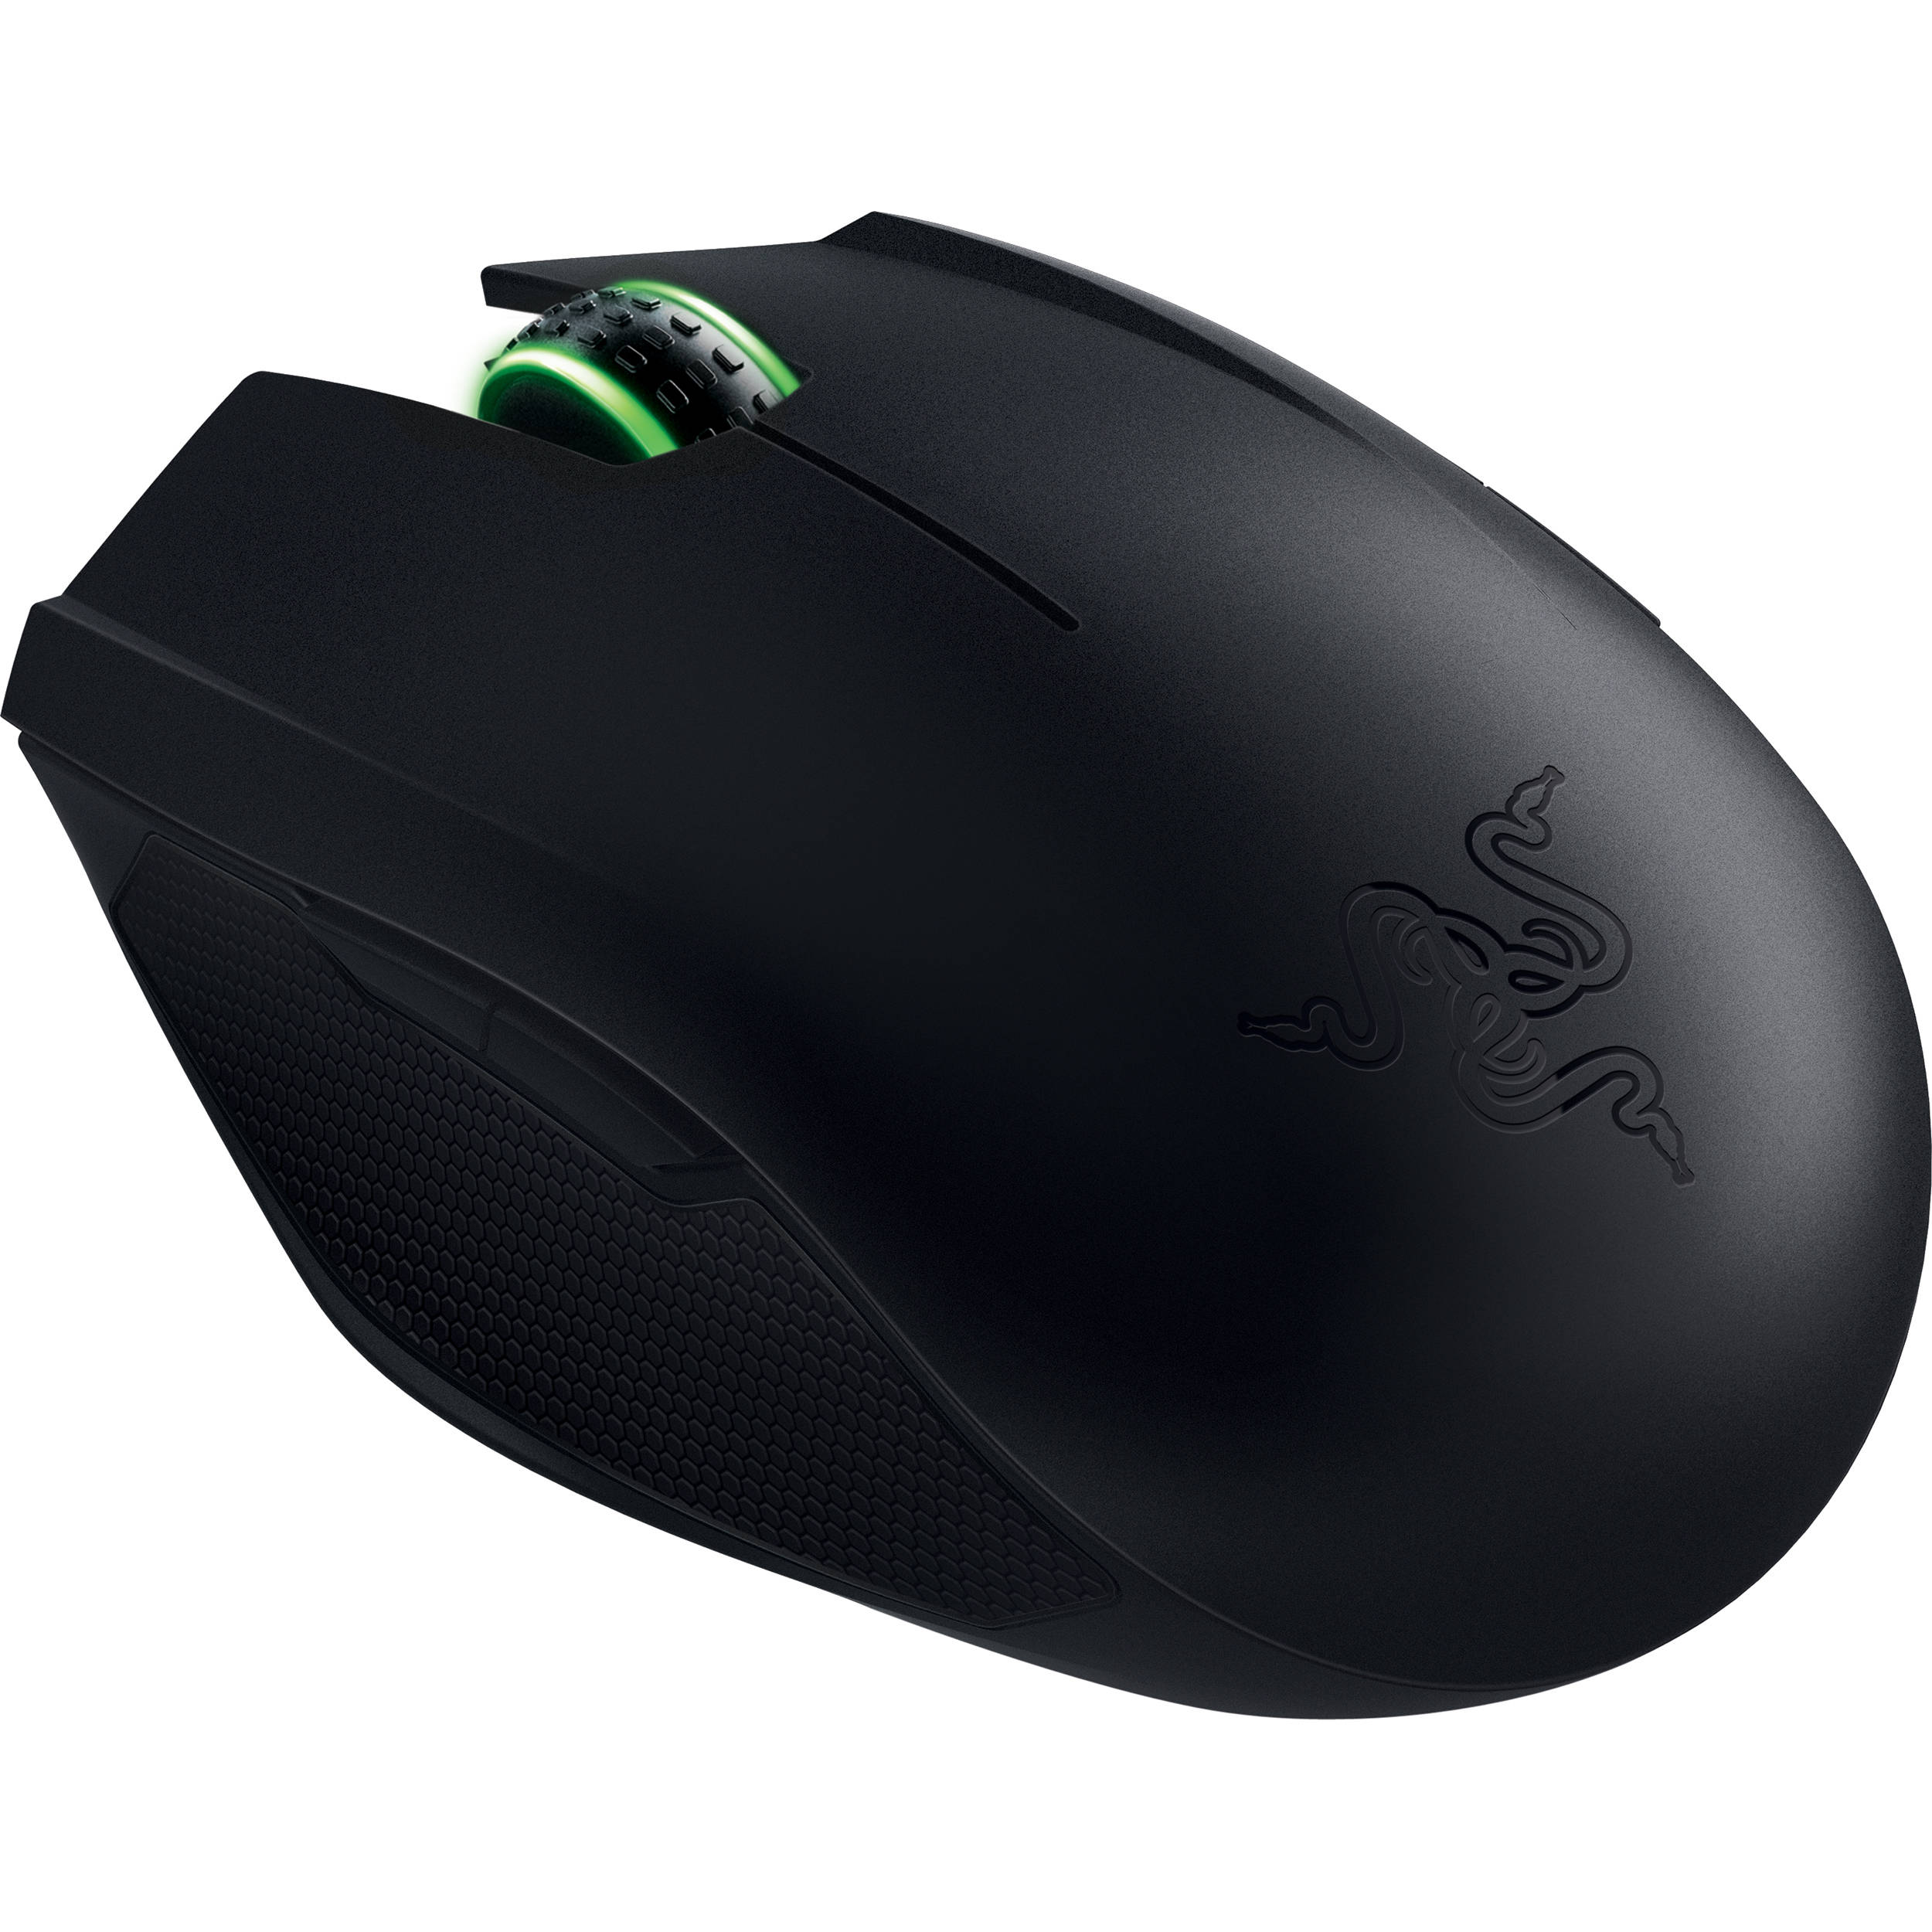 Razer Orochi Gaming Mouse Drivers